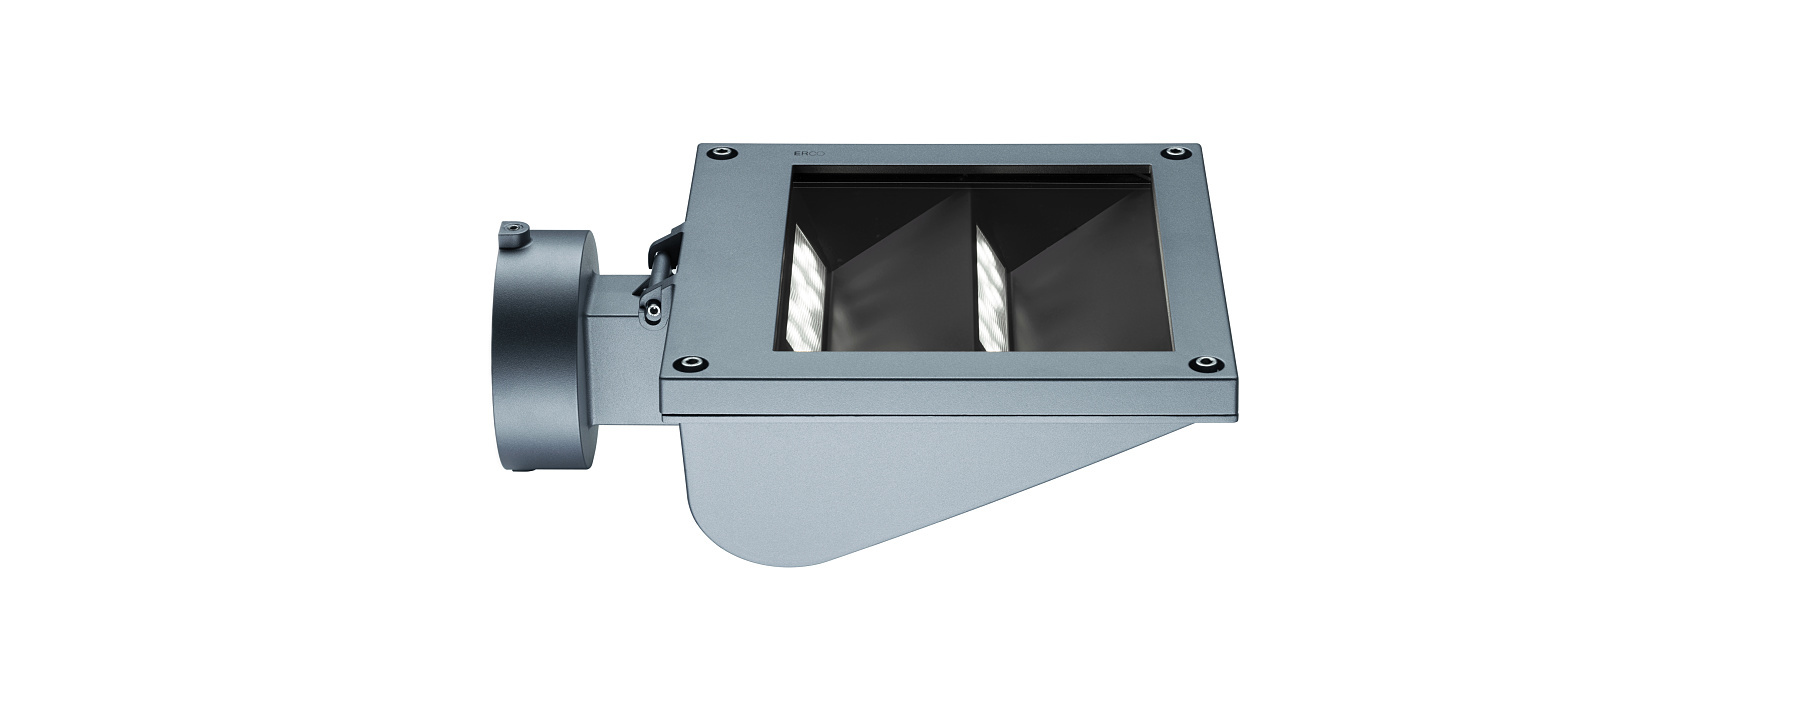 Parscoop - Projectors, floodlights and wallwashers